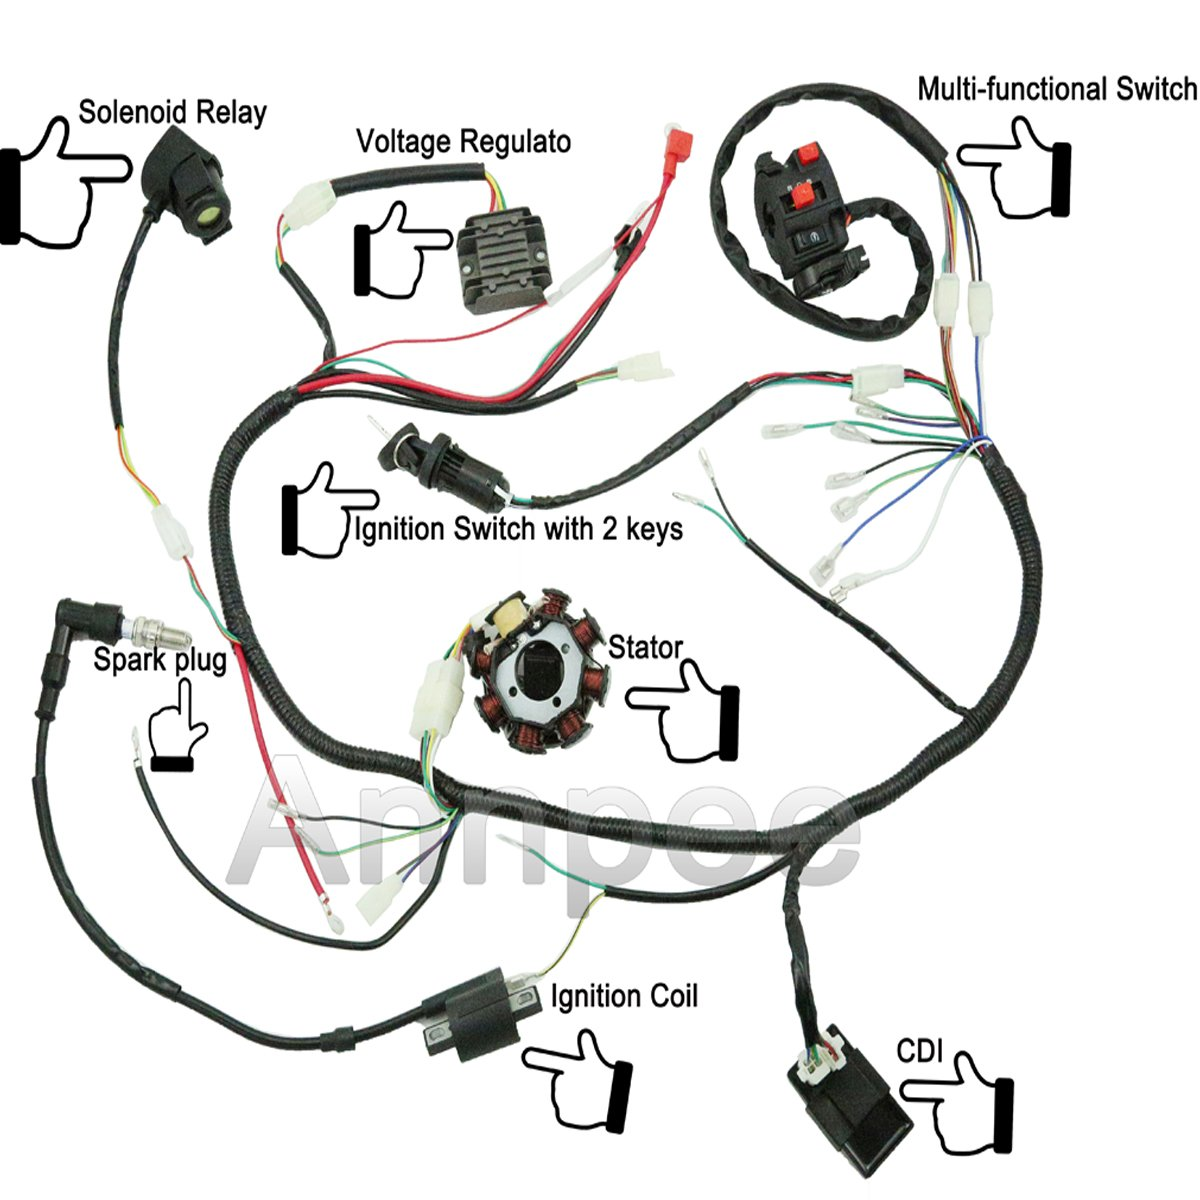 4 Wire Stator Wiring Diagram - Service Repair Manual  Wire Rectifier Wiring Diagram System on